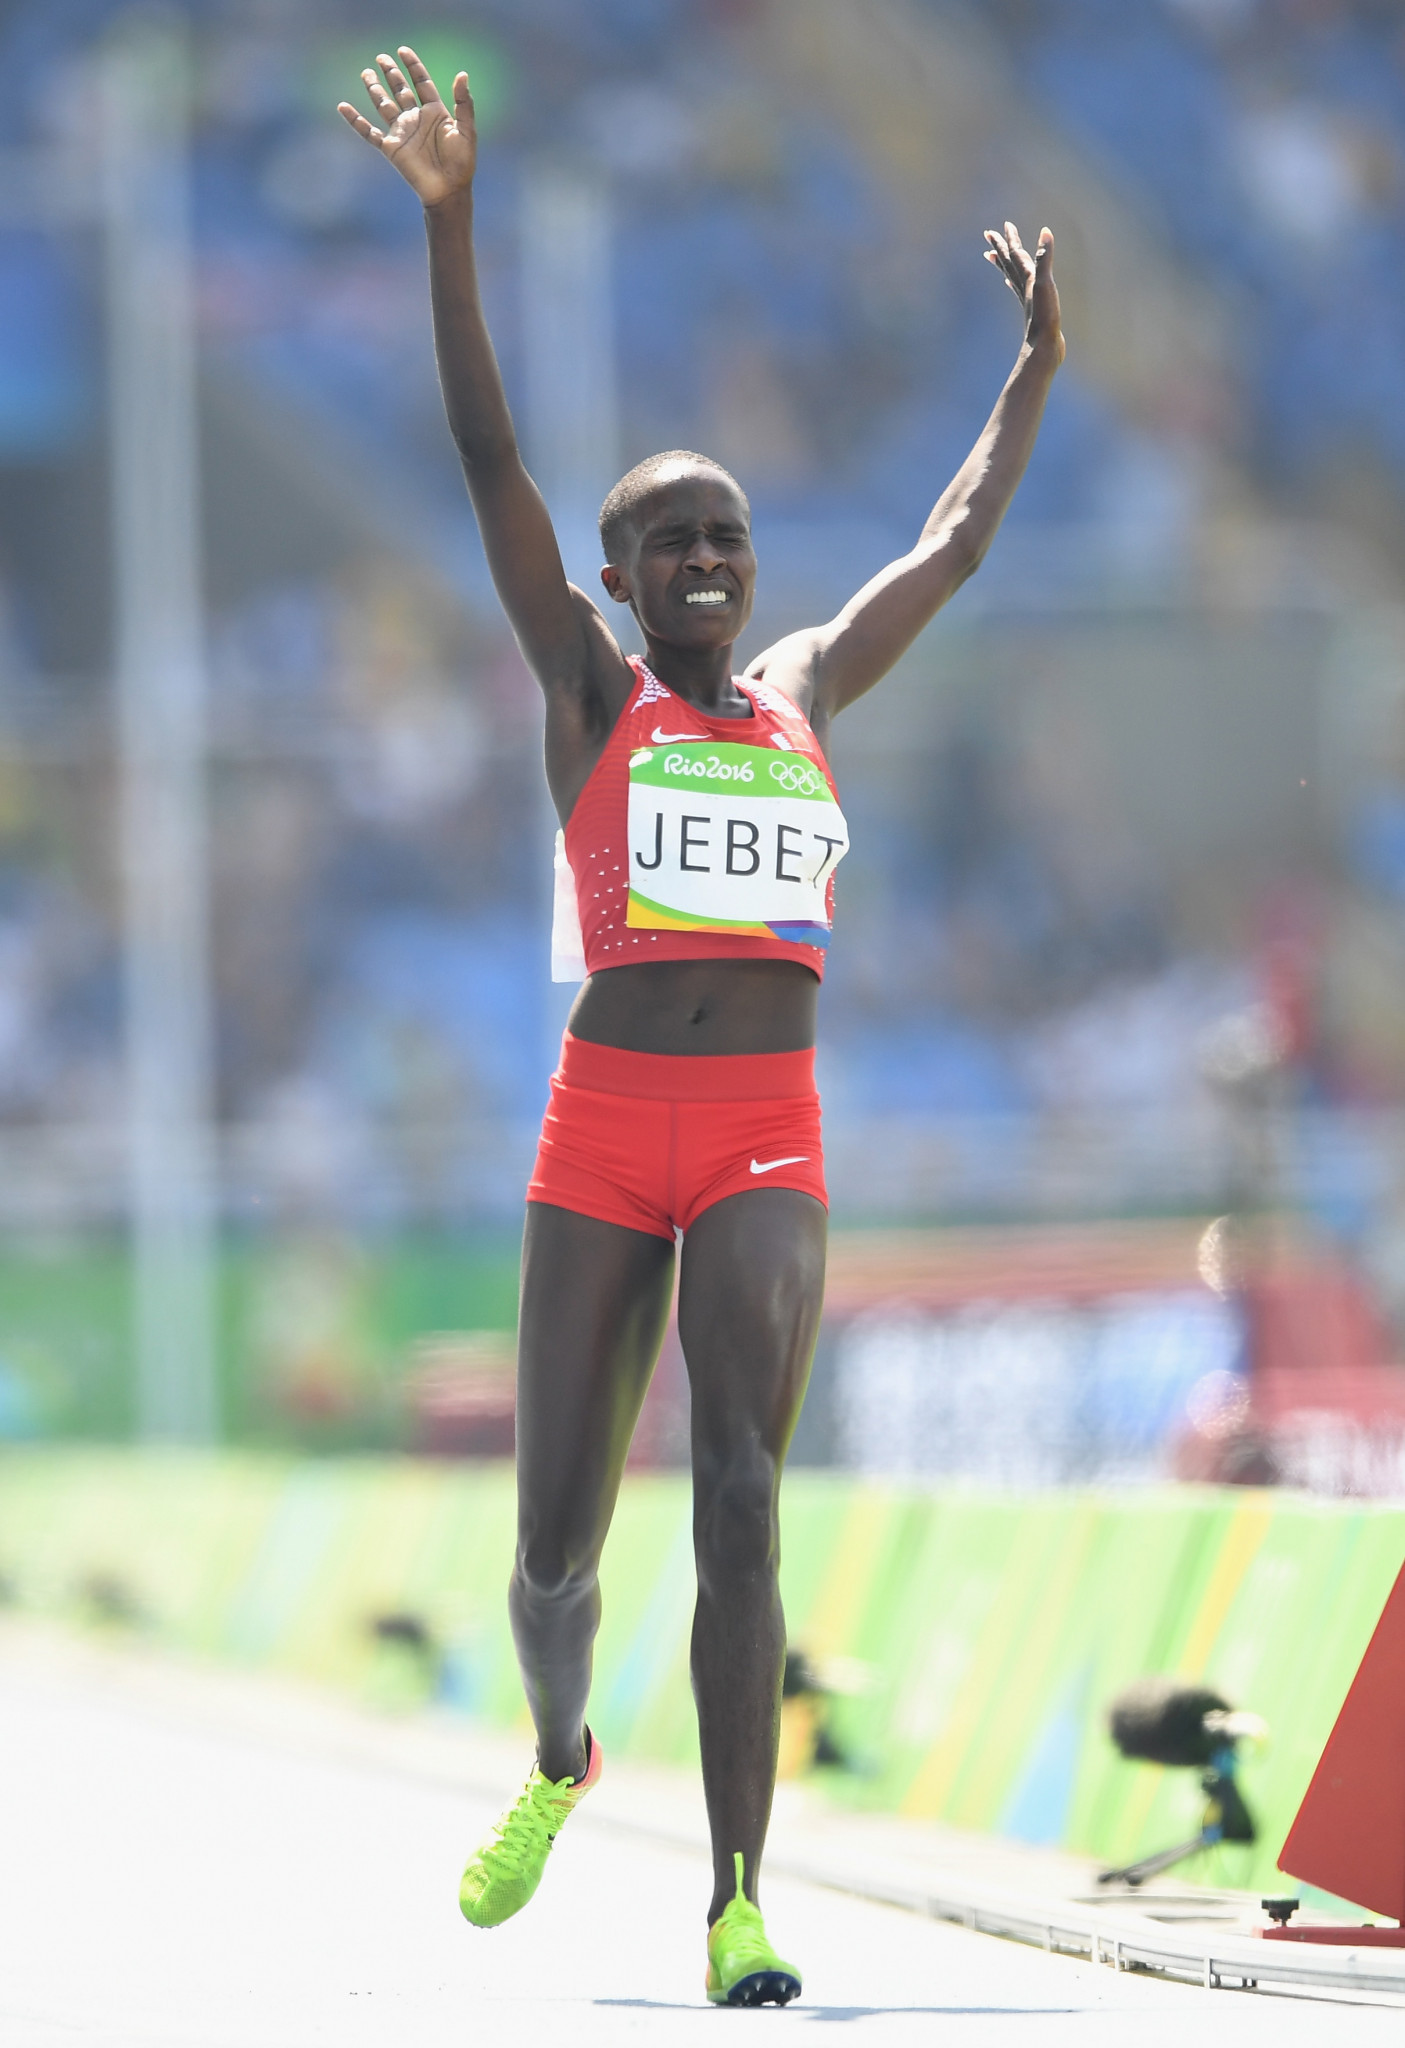 Rio 2016 gold medallist Ruth Jebet will be one of the favourites for Sunday's race ©Getty Images